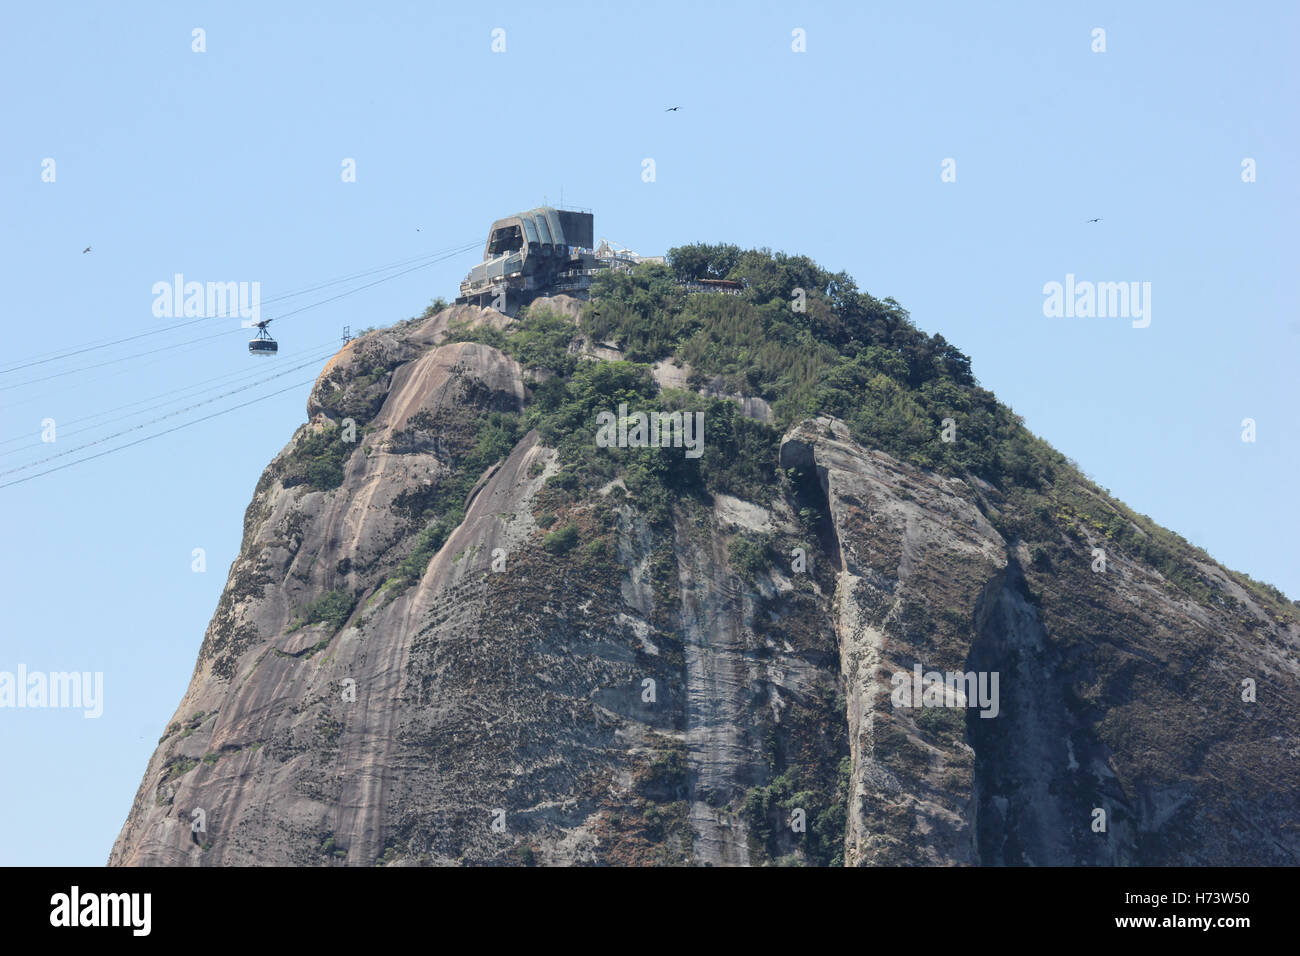 Rio de Janeiro, Brazil, November 02, 2016: Sugar Loaf, one of Rio's top sights seen from the Leme Fort.  Summer - Stock Image